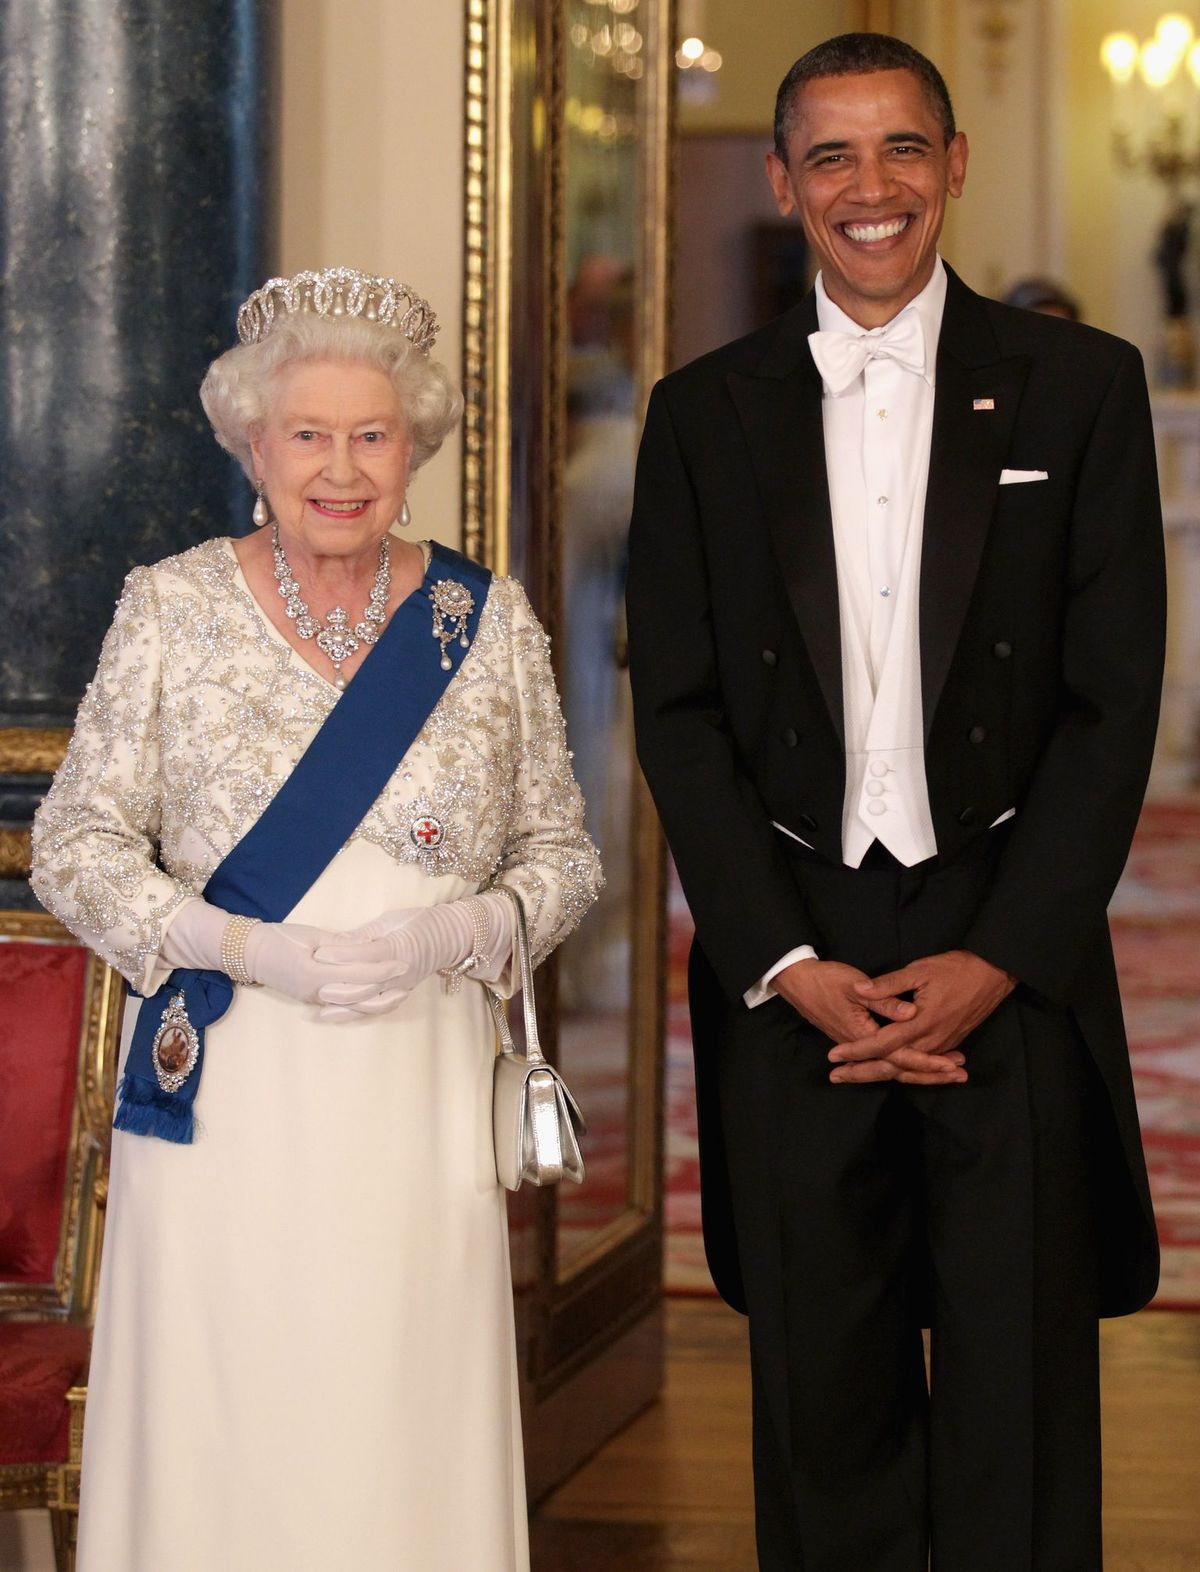 Queen Elizabeth II and Former President Barack Obama pose in the Music Room of Buckingham Palace on May 24, 2011 in London, England. | Photo: Getty Images.